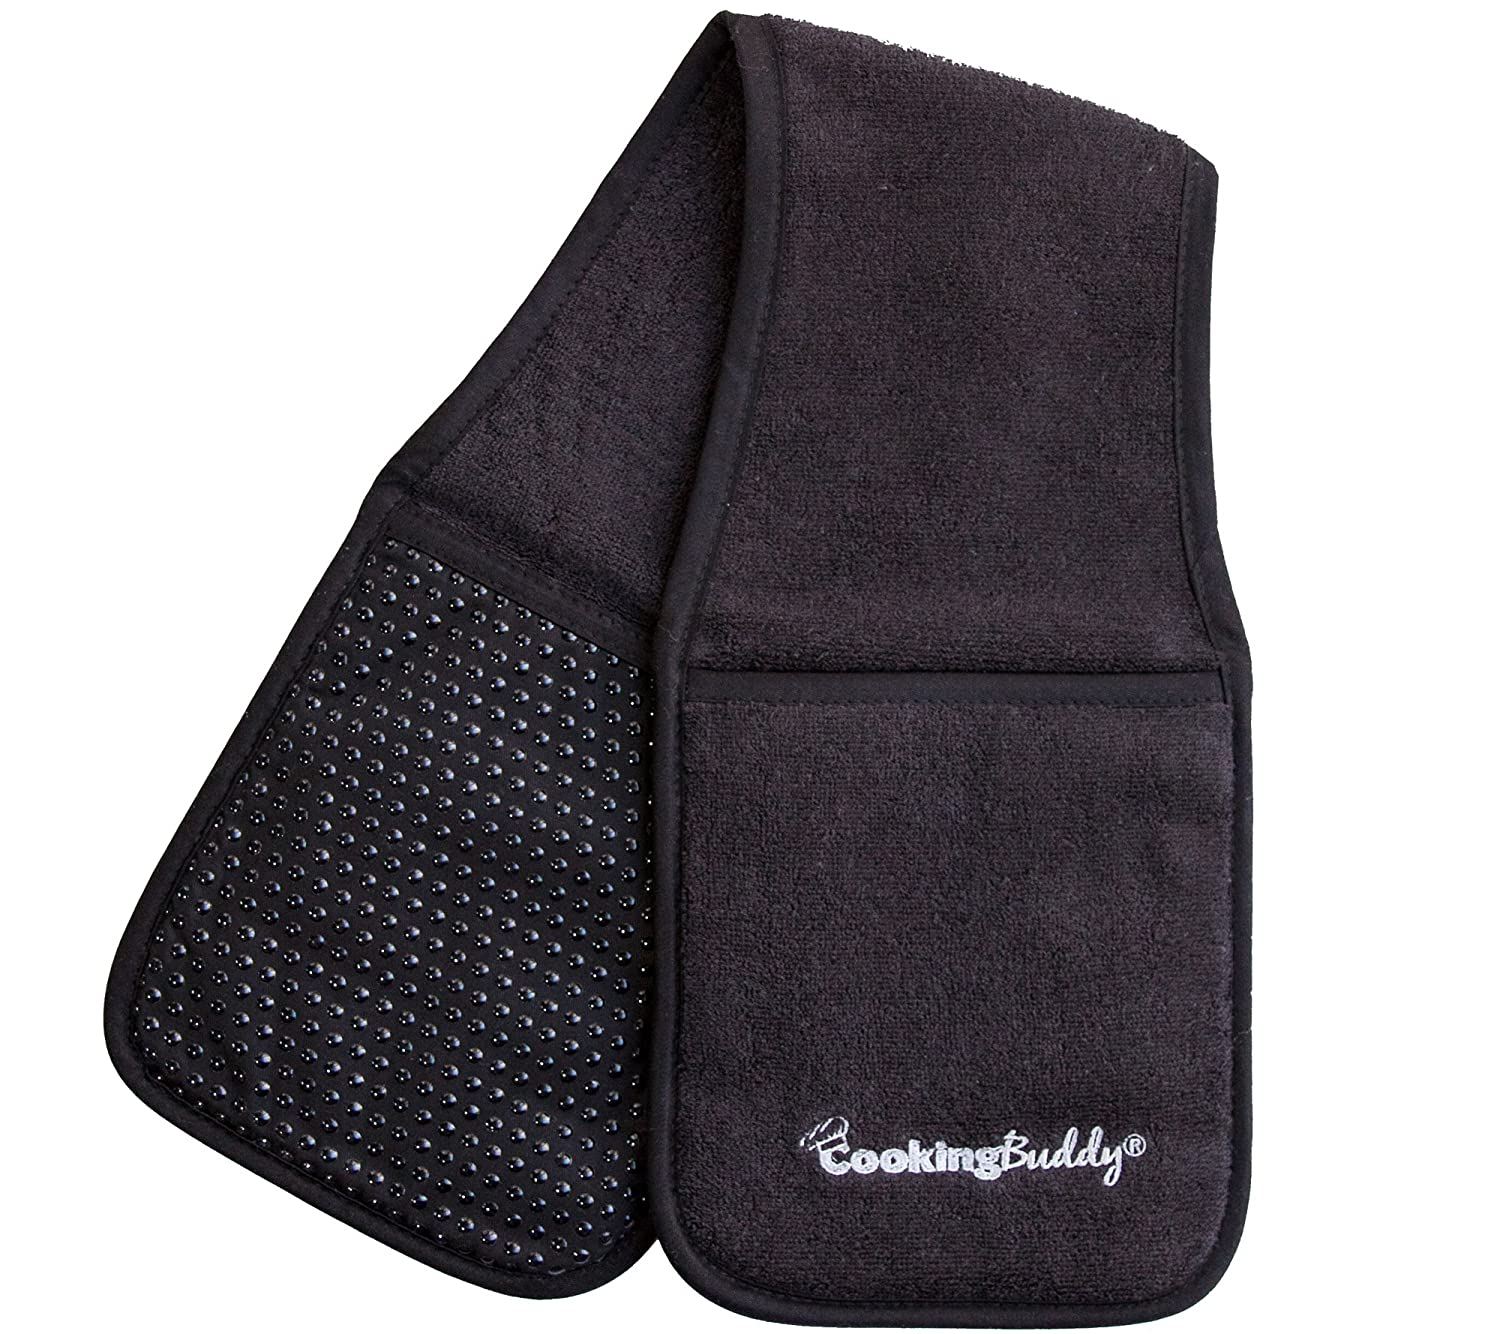 Campanelli's Cooking Buddy - Professional Grade All-in-One Pot Holder, Hand Towel, Lid Grip, Tool Caddy, and Trivet. Heat Resistant up to 500ºF. As Seen On Facebook (Onyx)